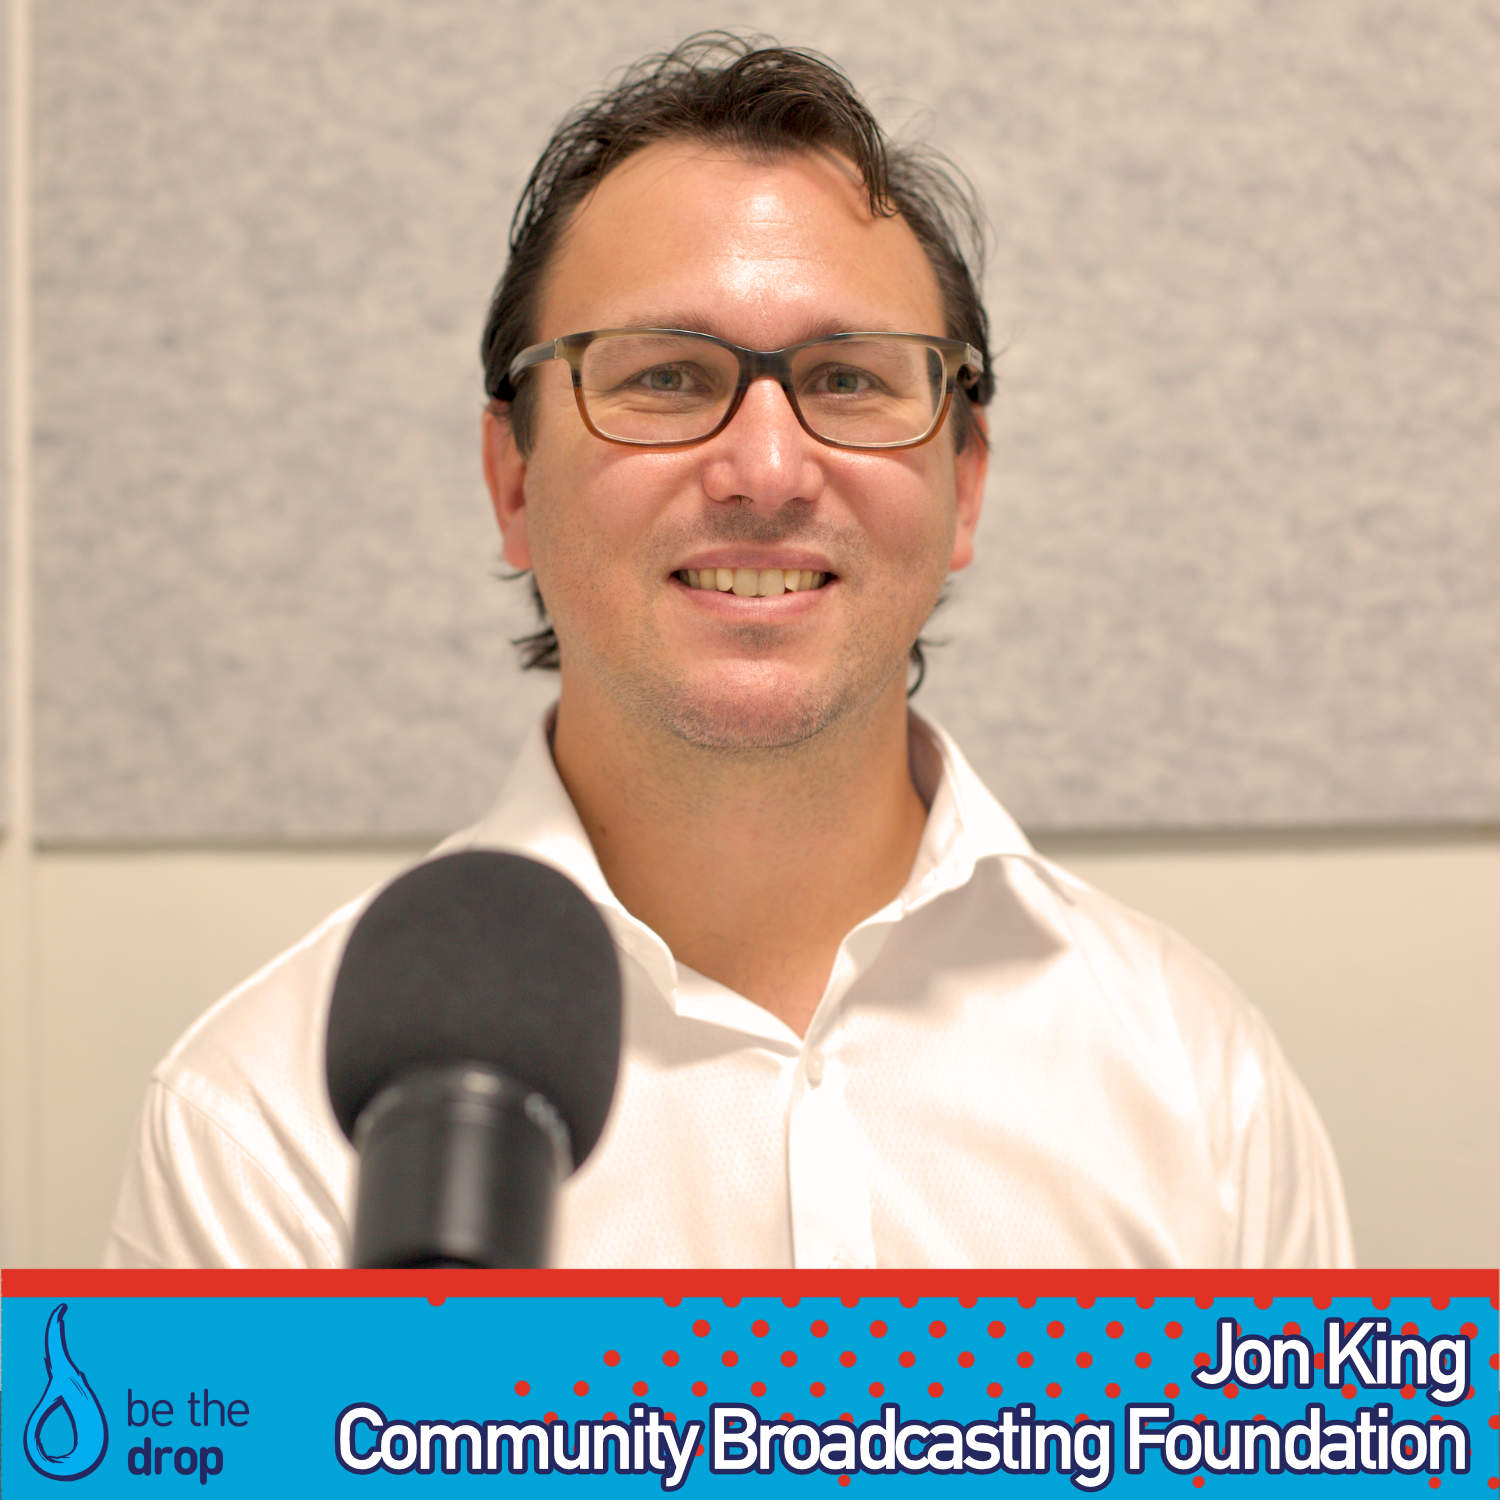 Jon King Explains The Community Broadcasting Foundation Grants